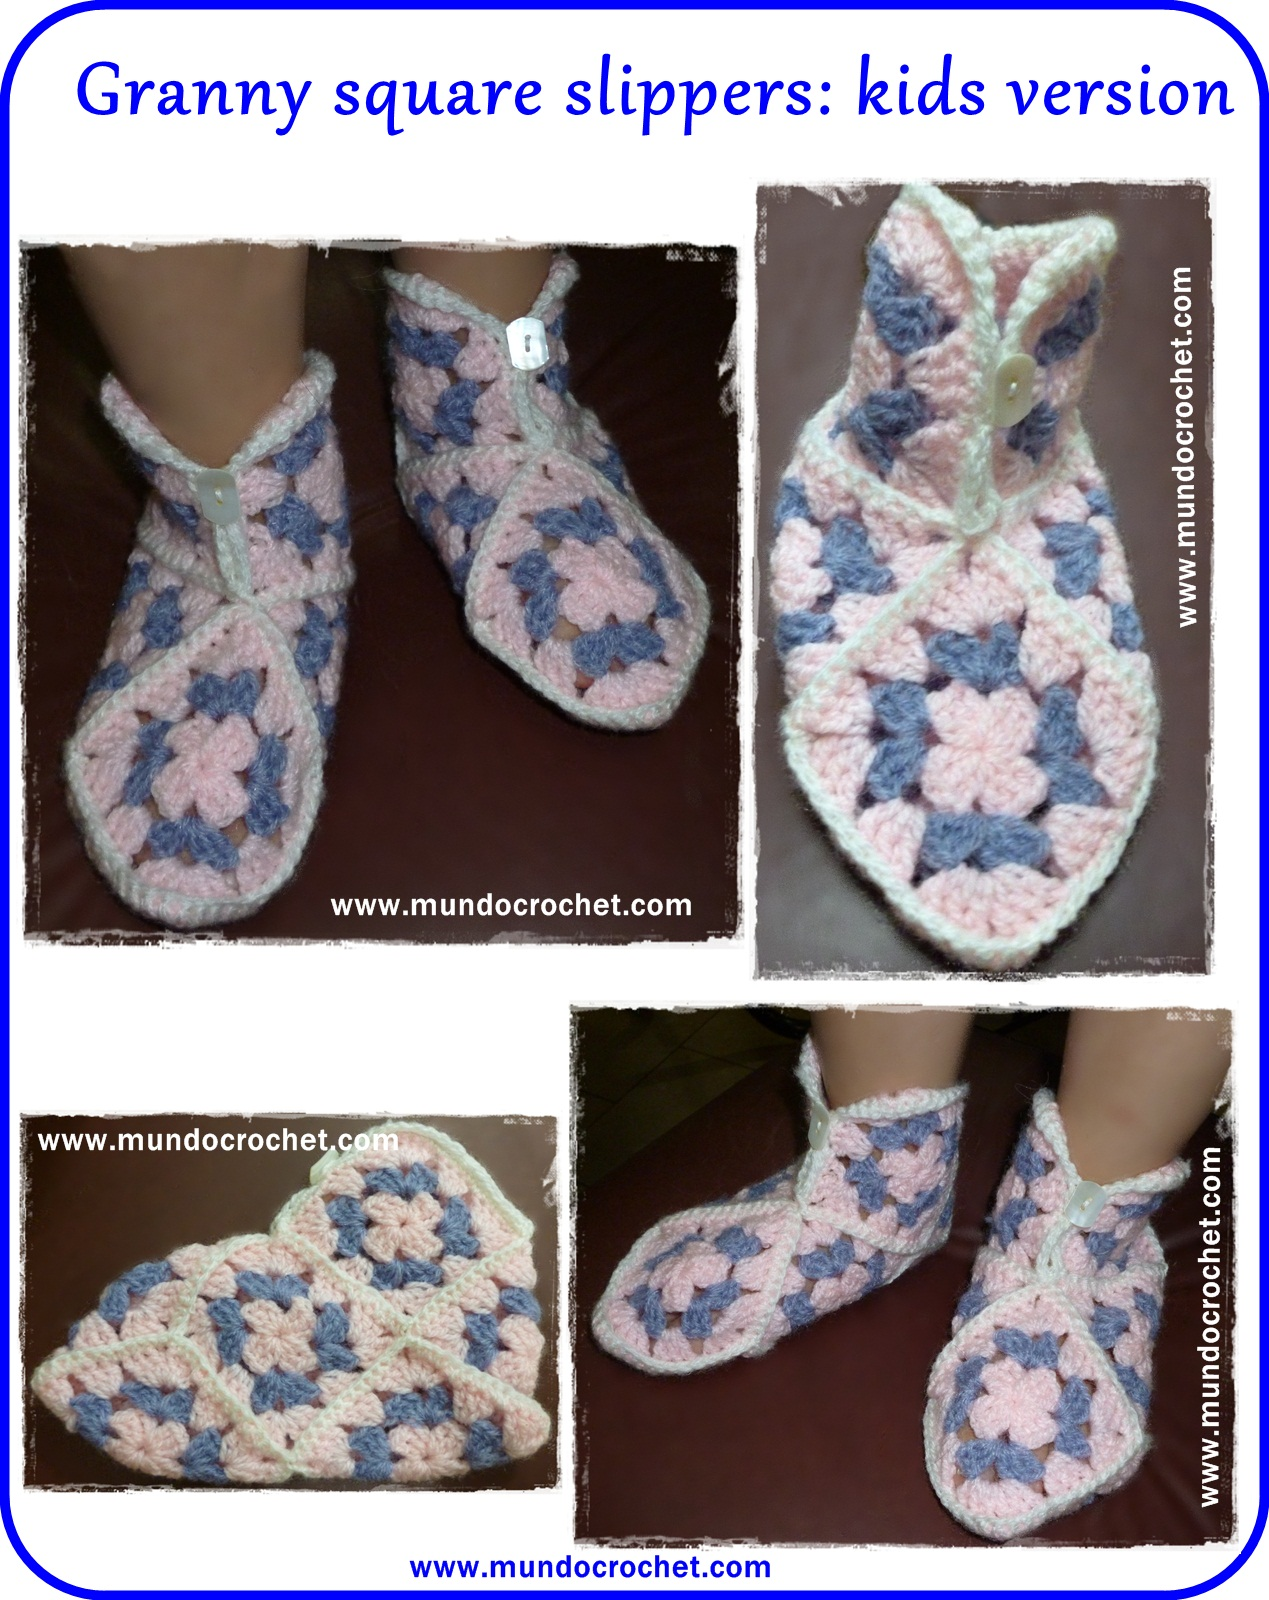 Granny square slippers